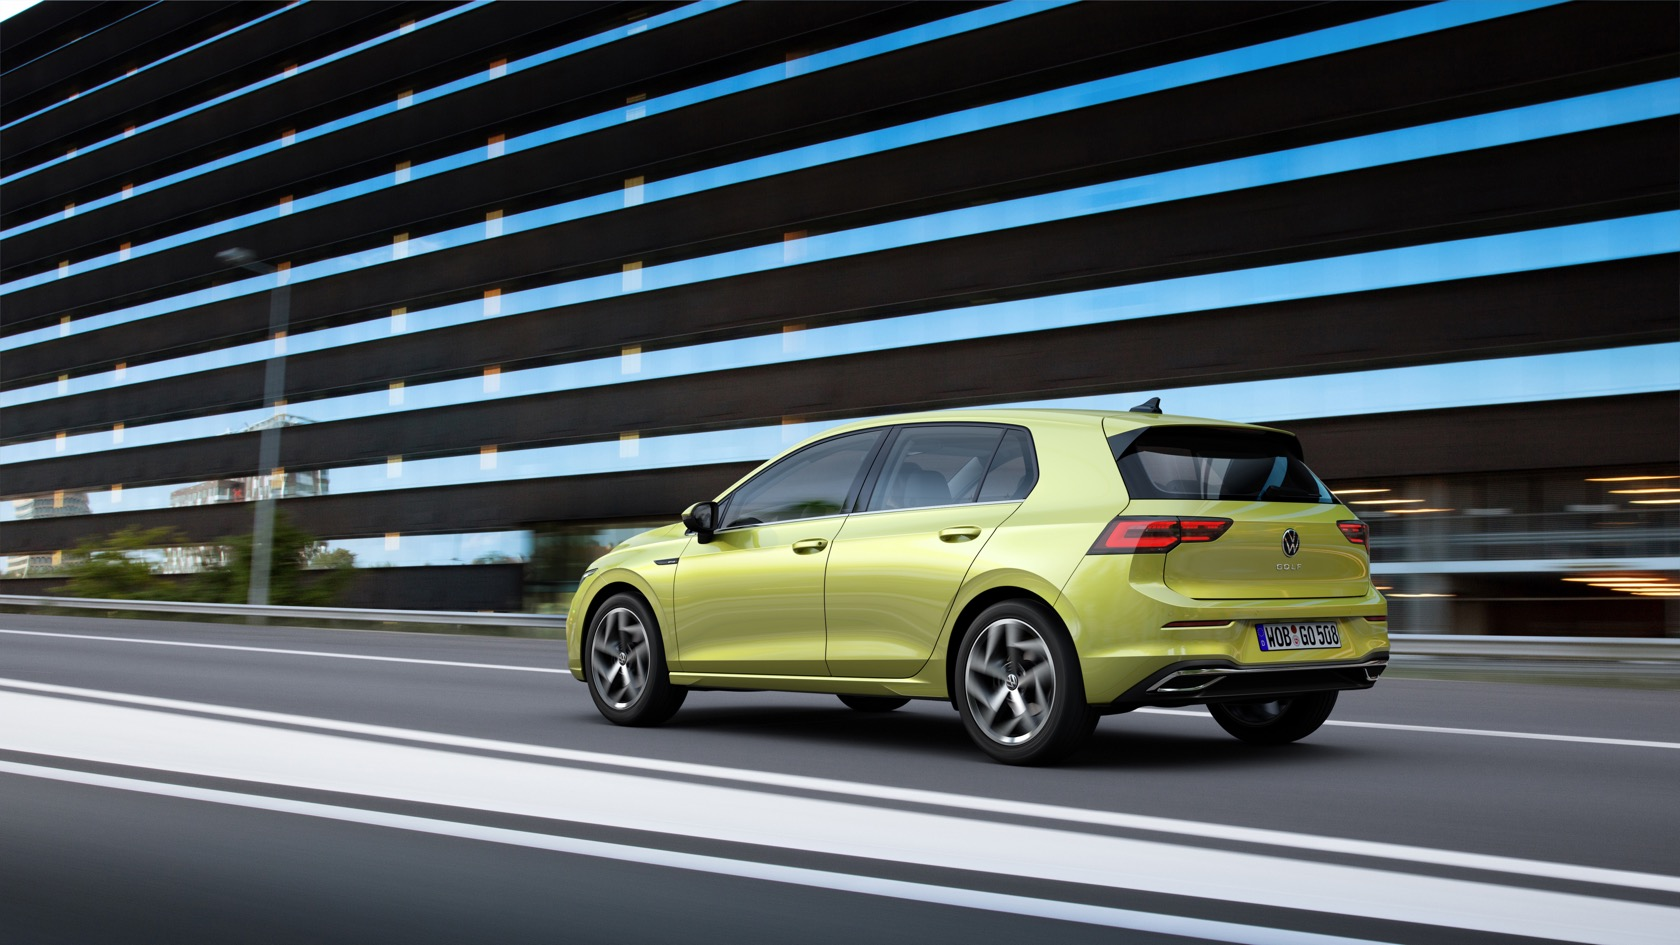 2020 VW Golf 8th Gen revealed: Five hybrids, GTI and R